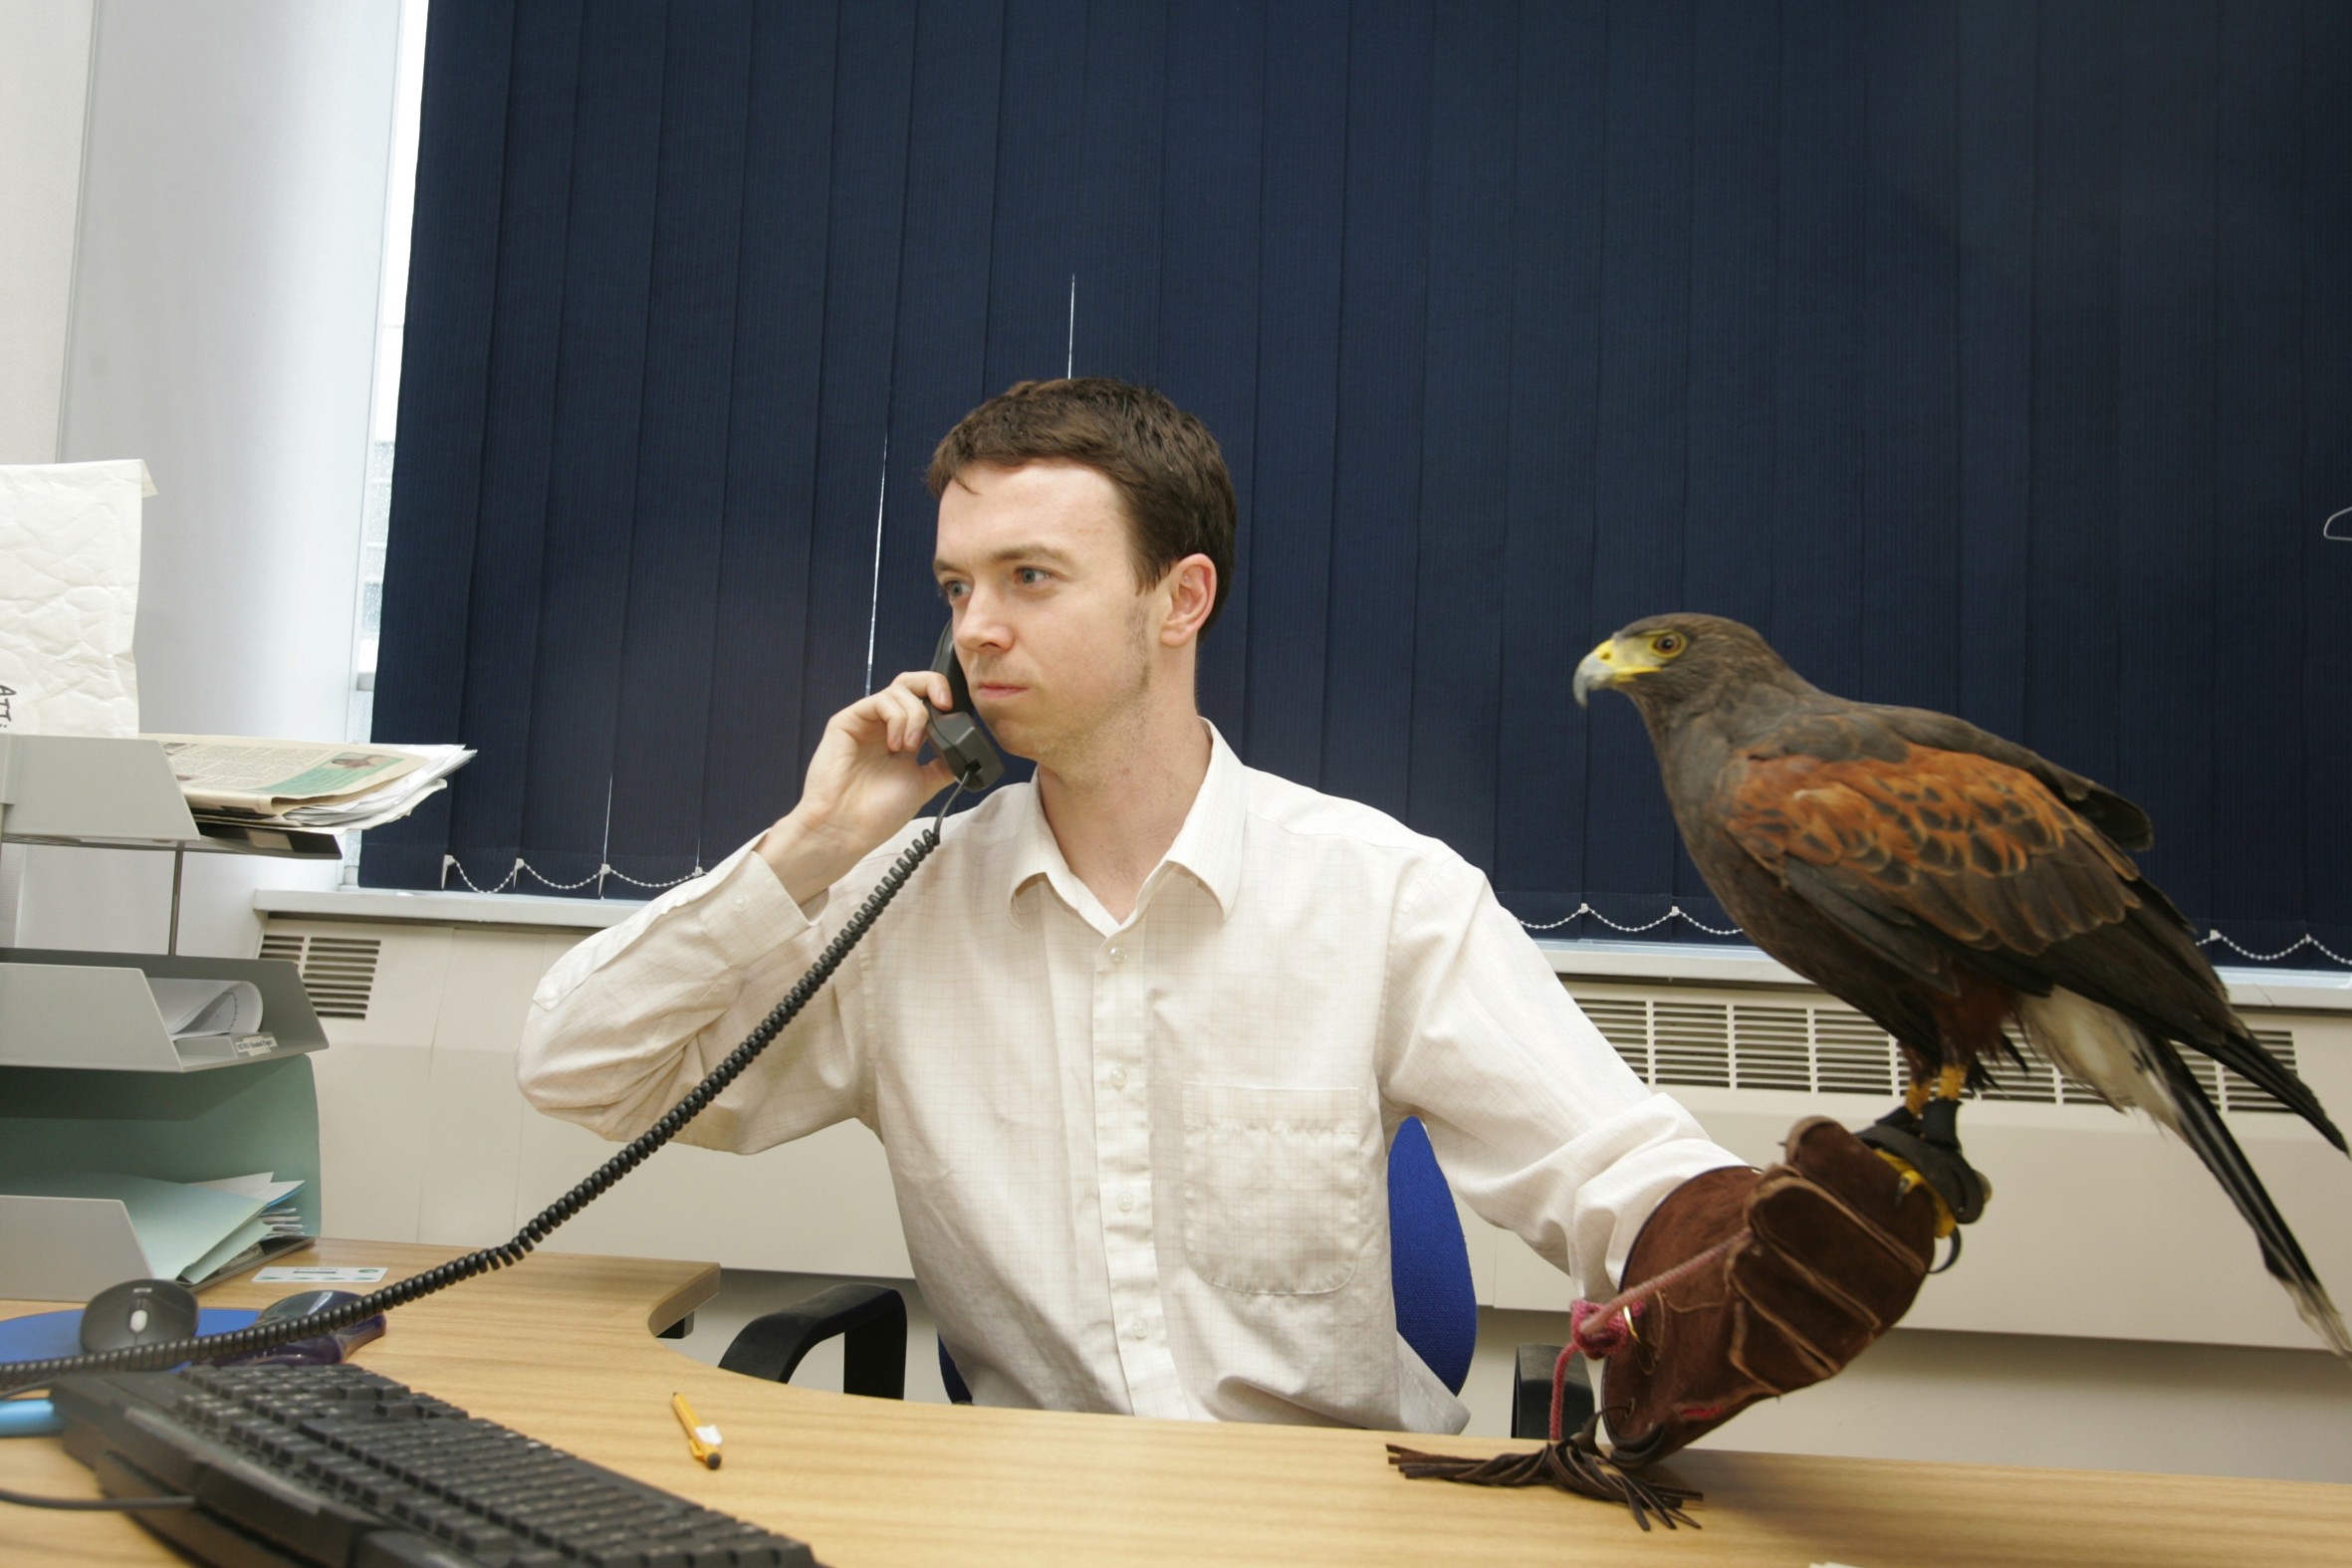 Office worker with a hawk